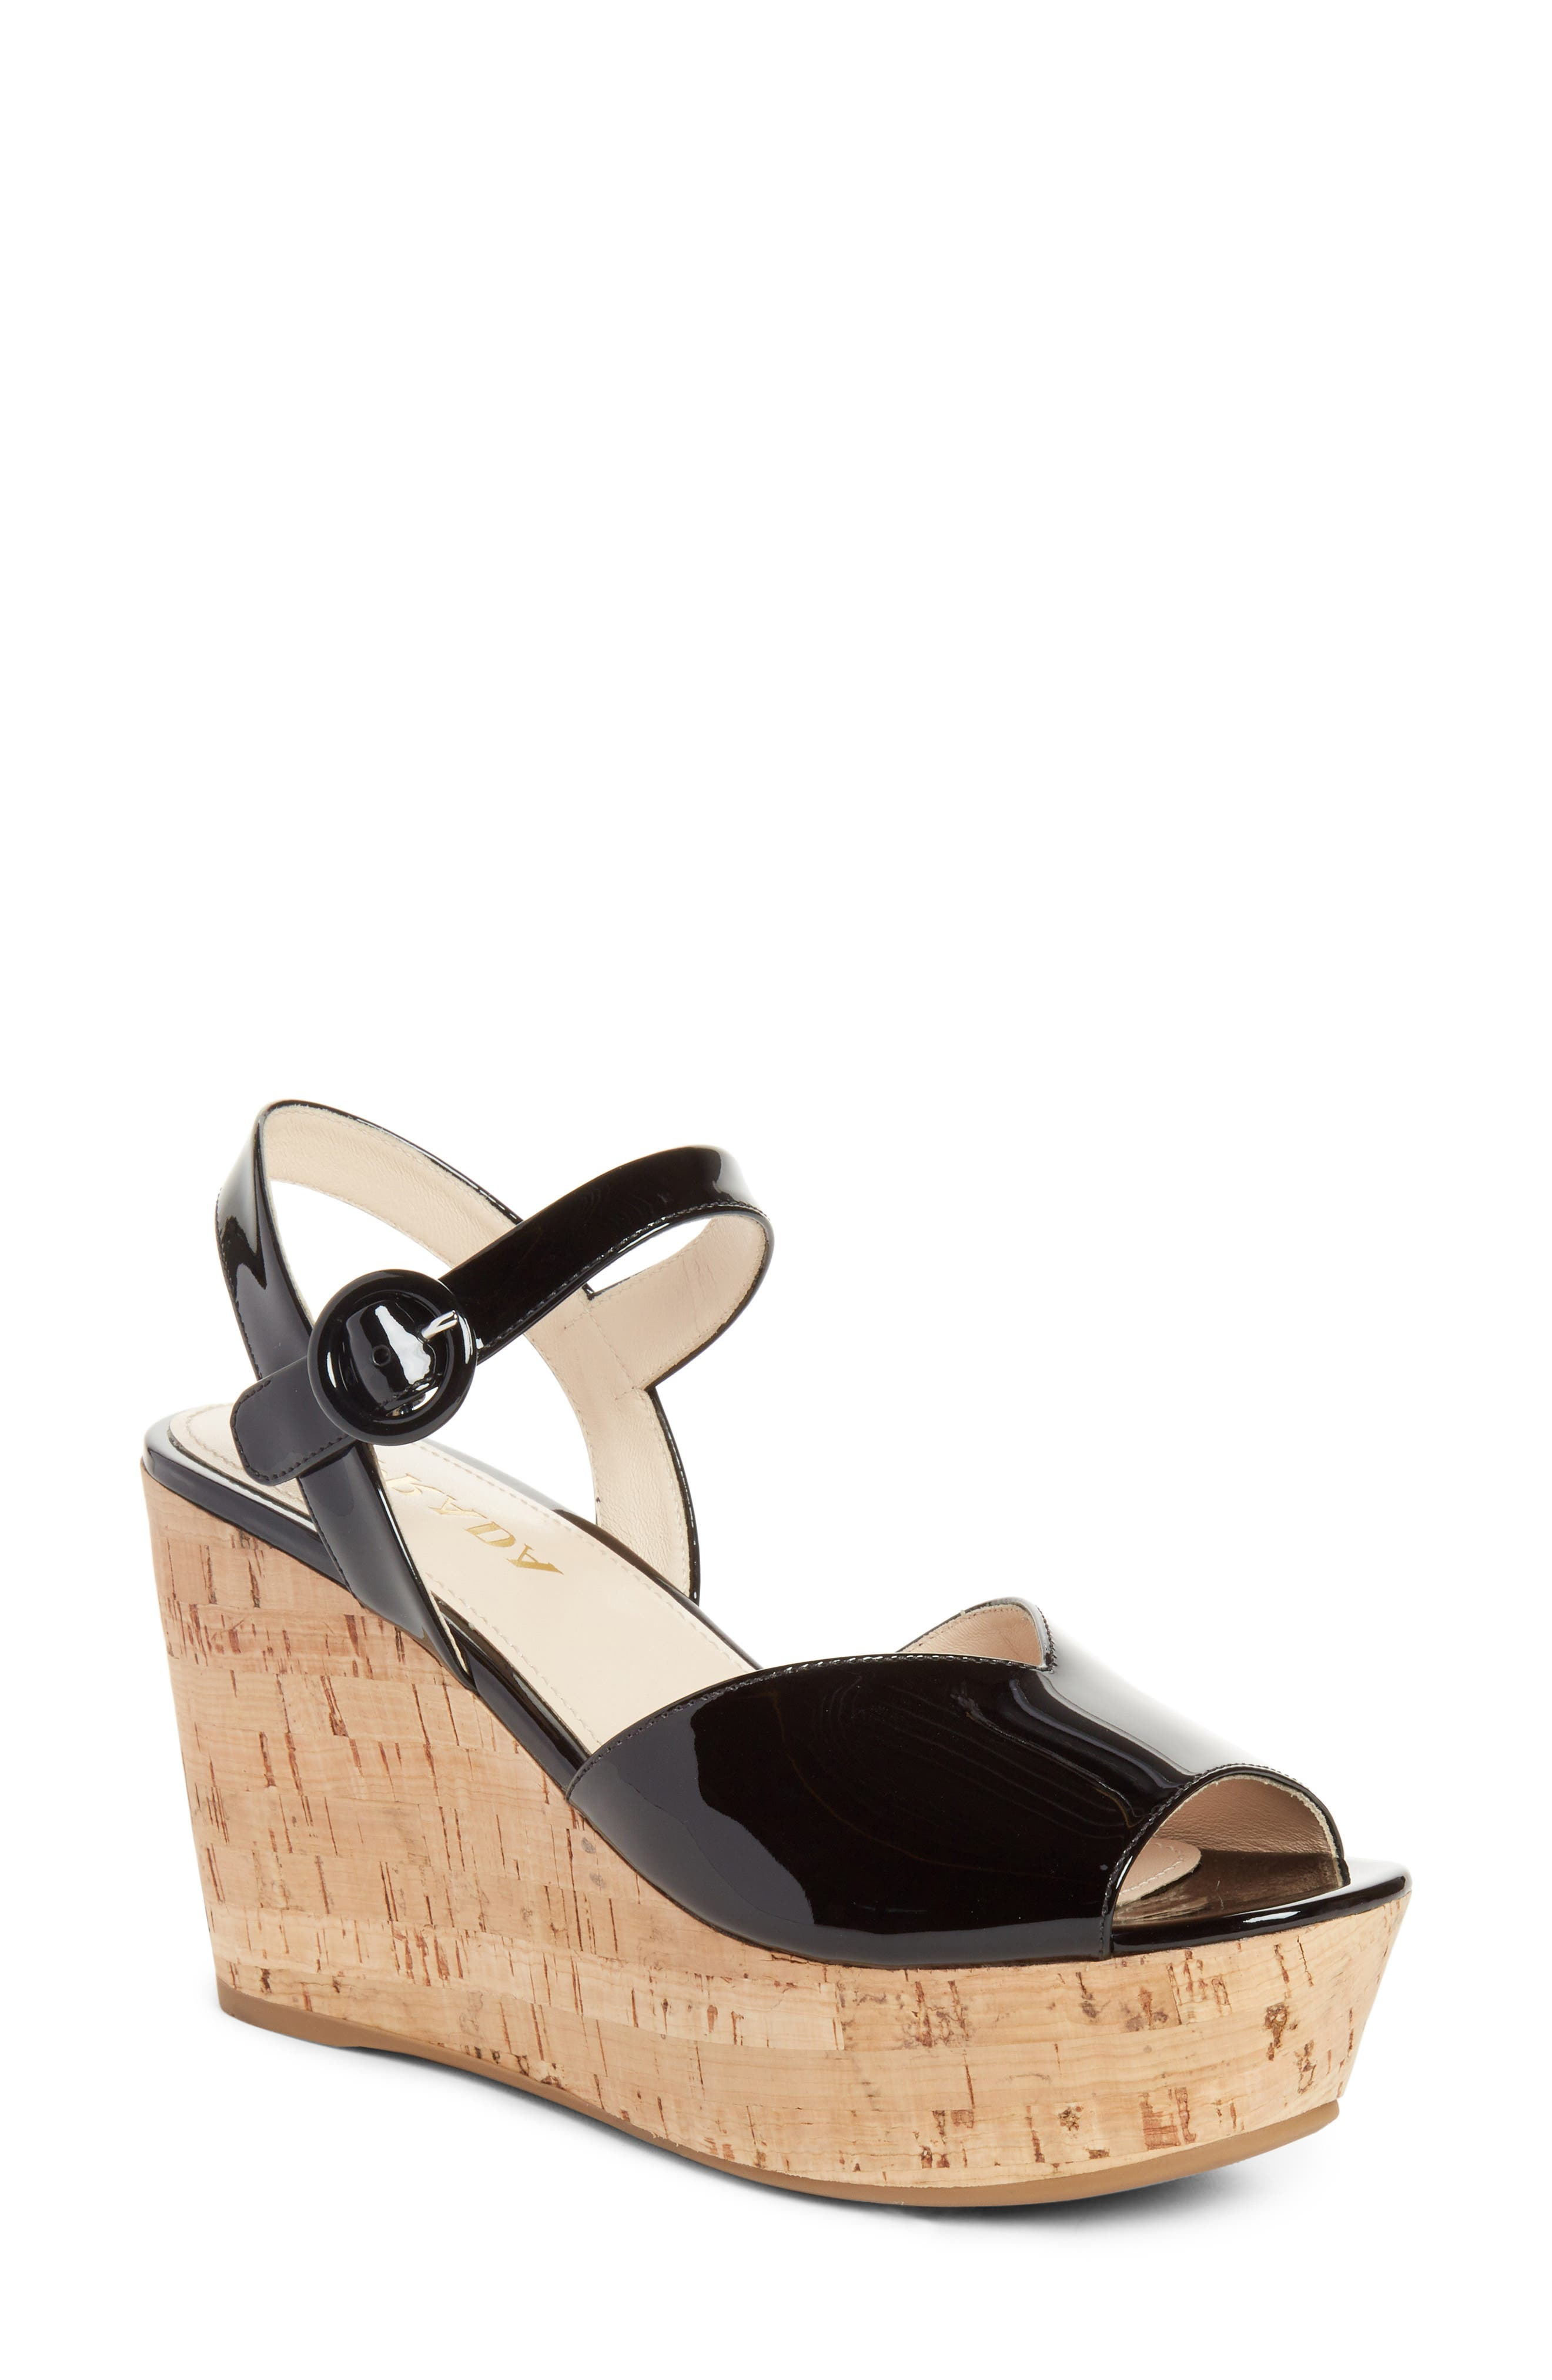 Prada Wedge Platform Sandal (Women)